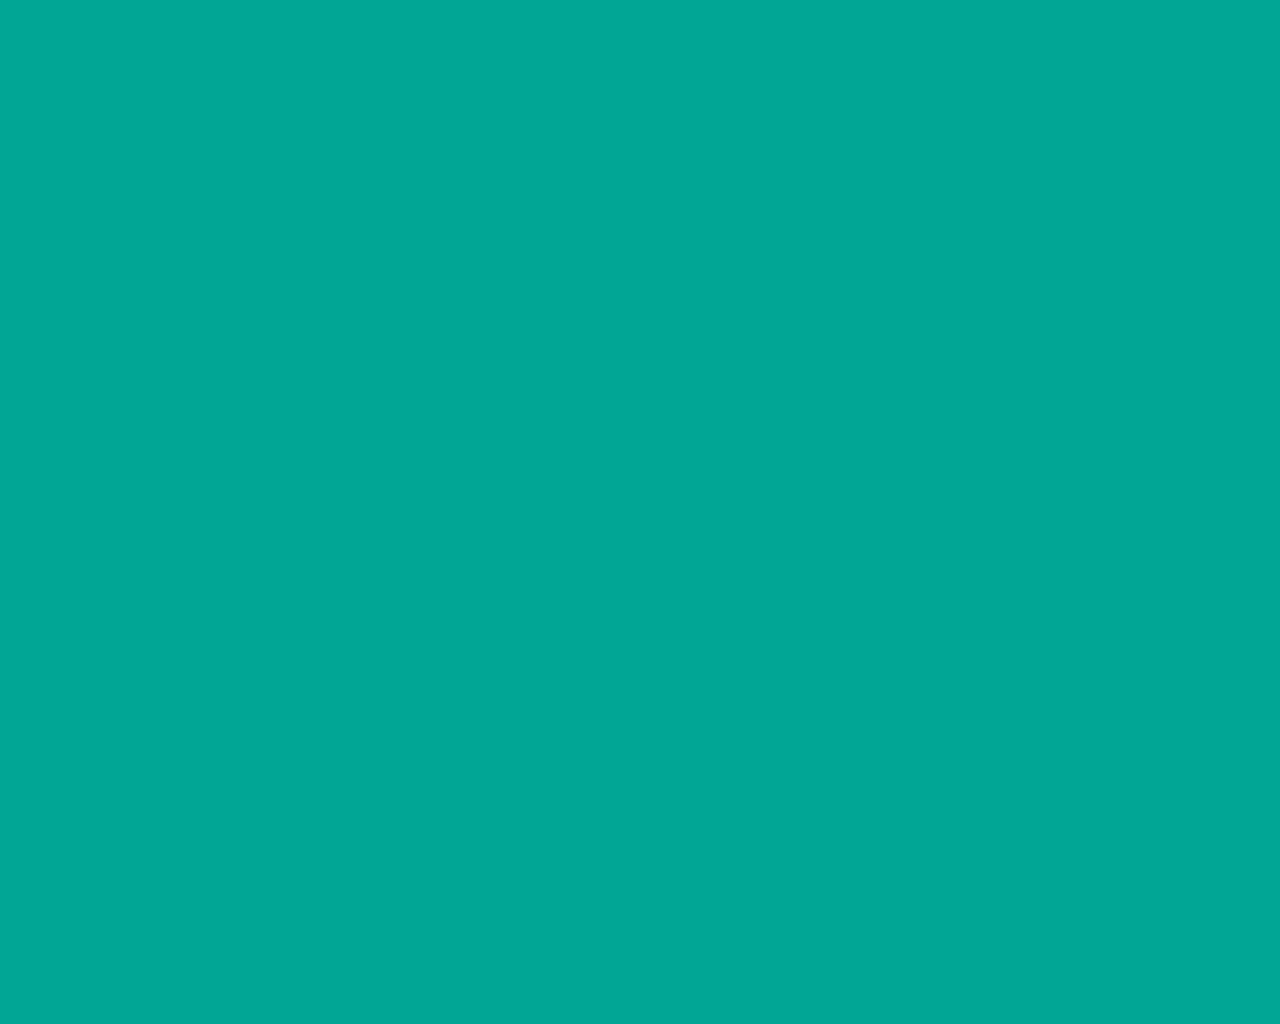 1280x1024 Persian Green Solid Color Background